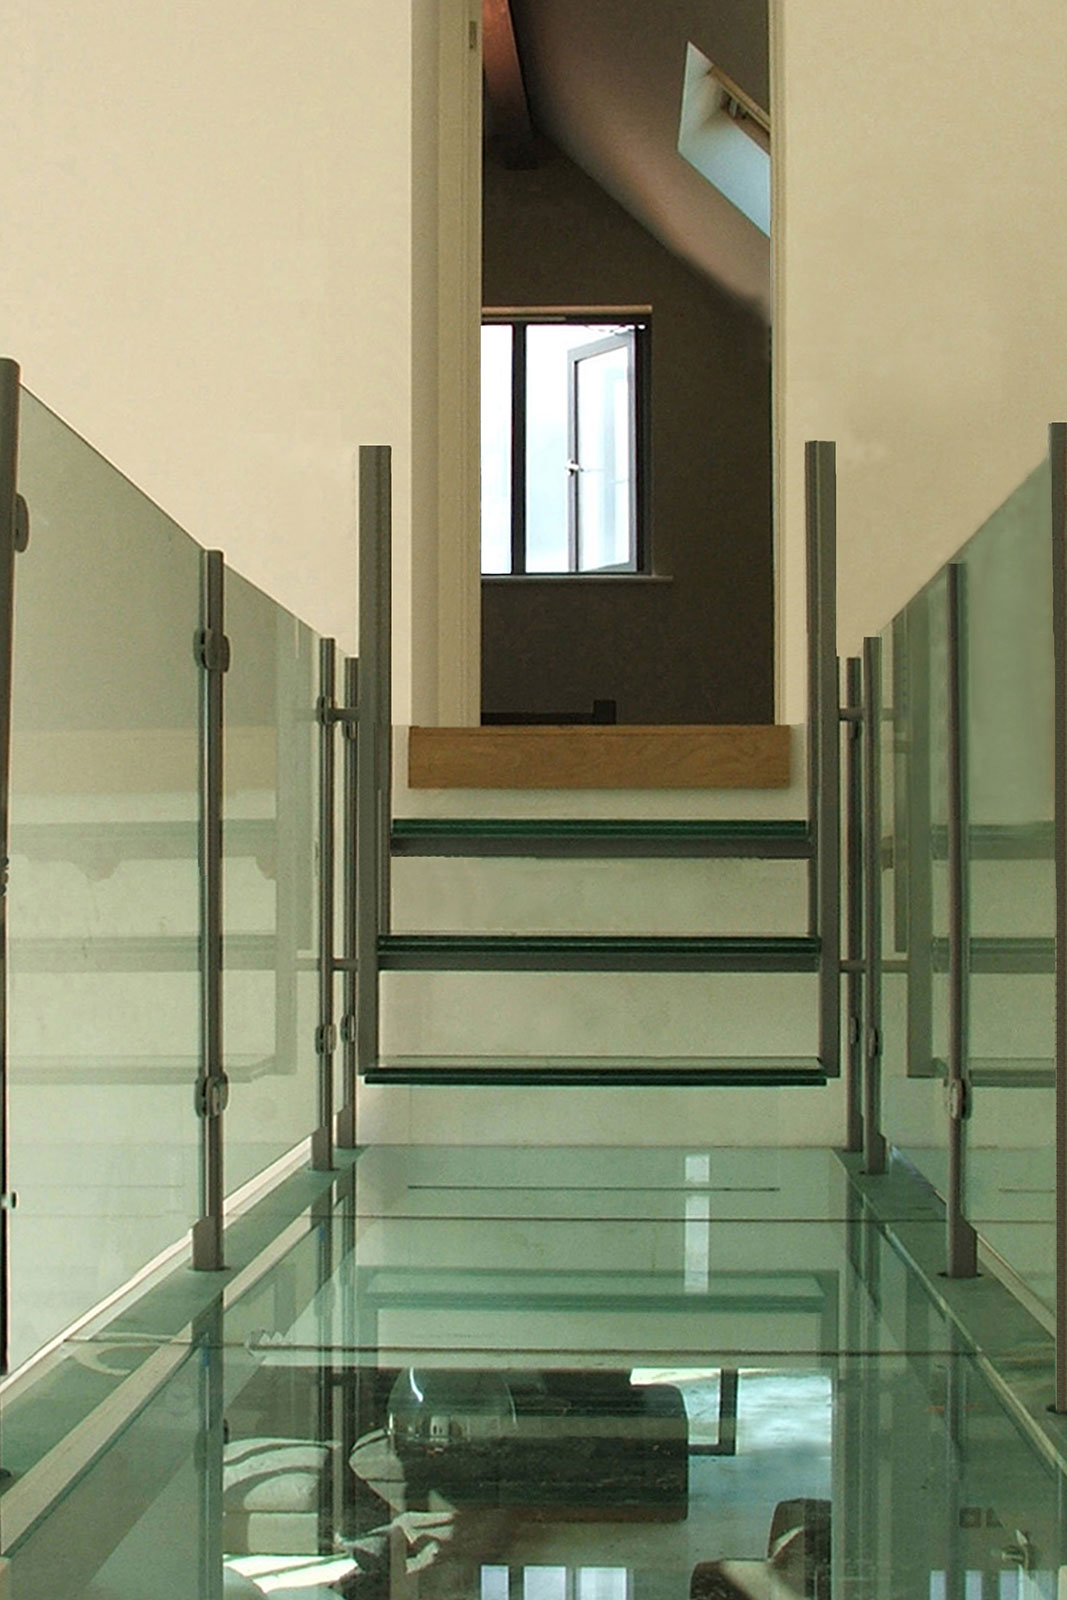 Structural Glass Bridge with Glass Flooring & Balustrades